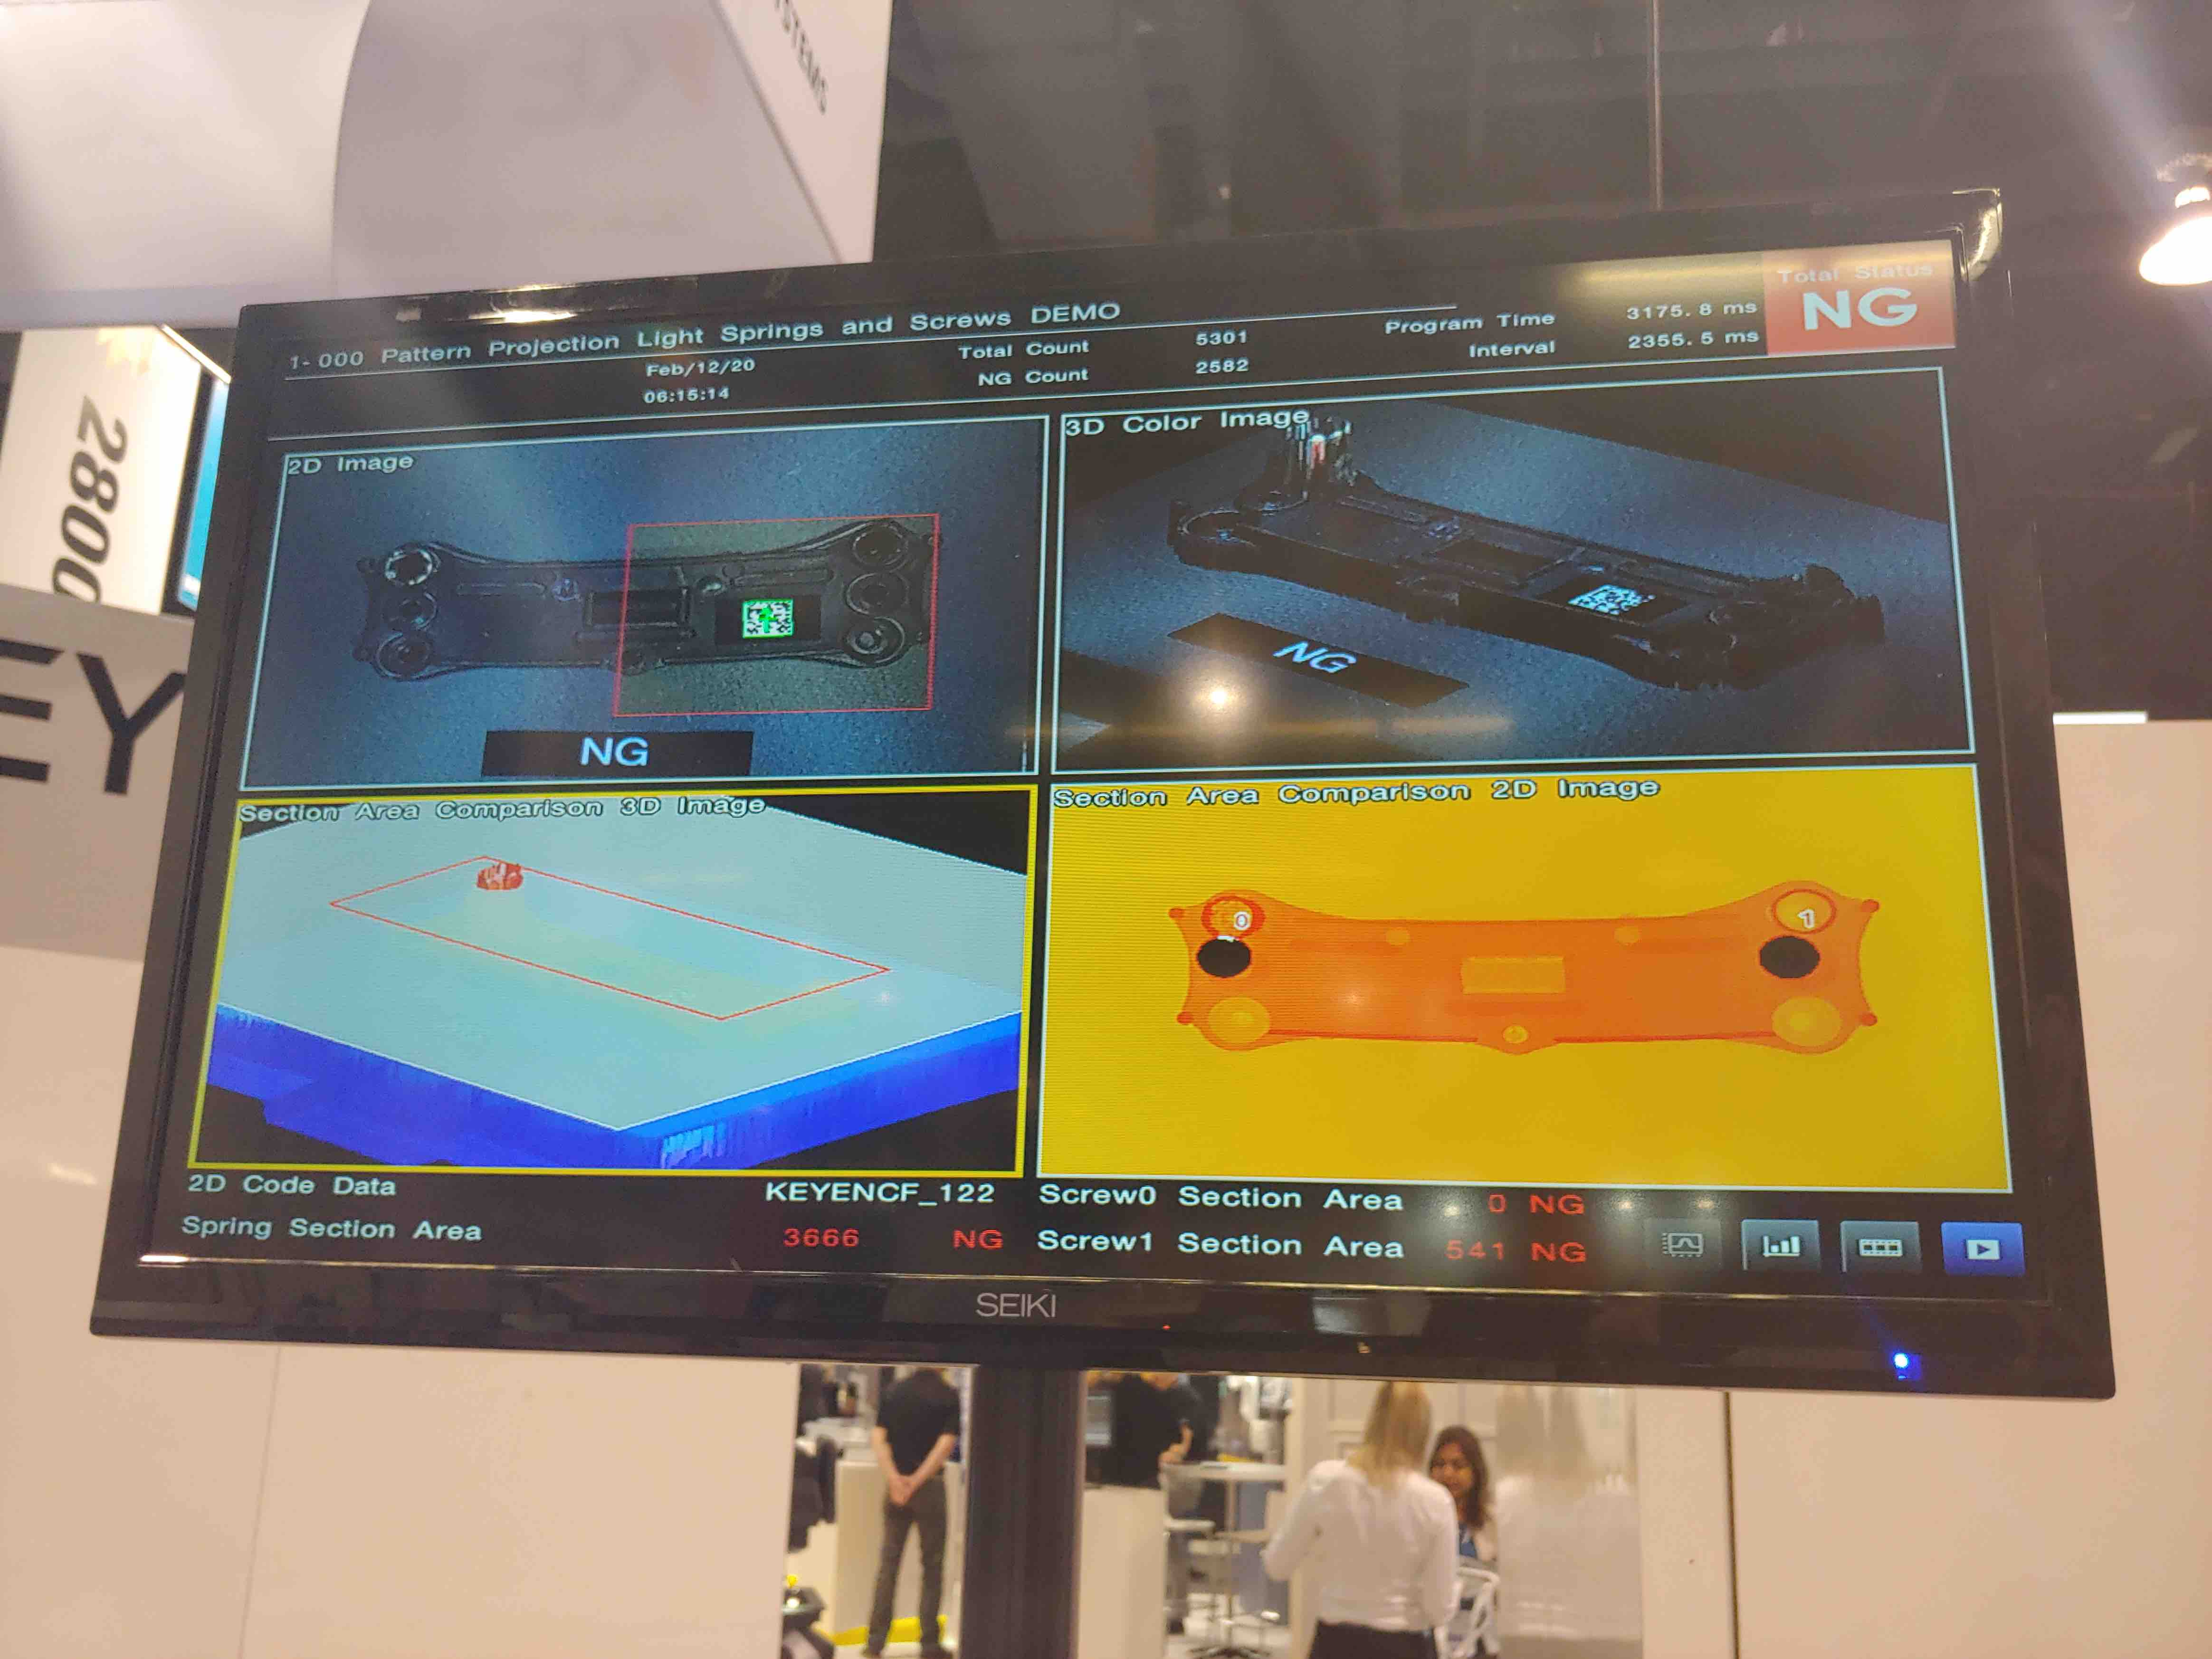 keyence vision systems on display